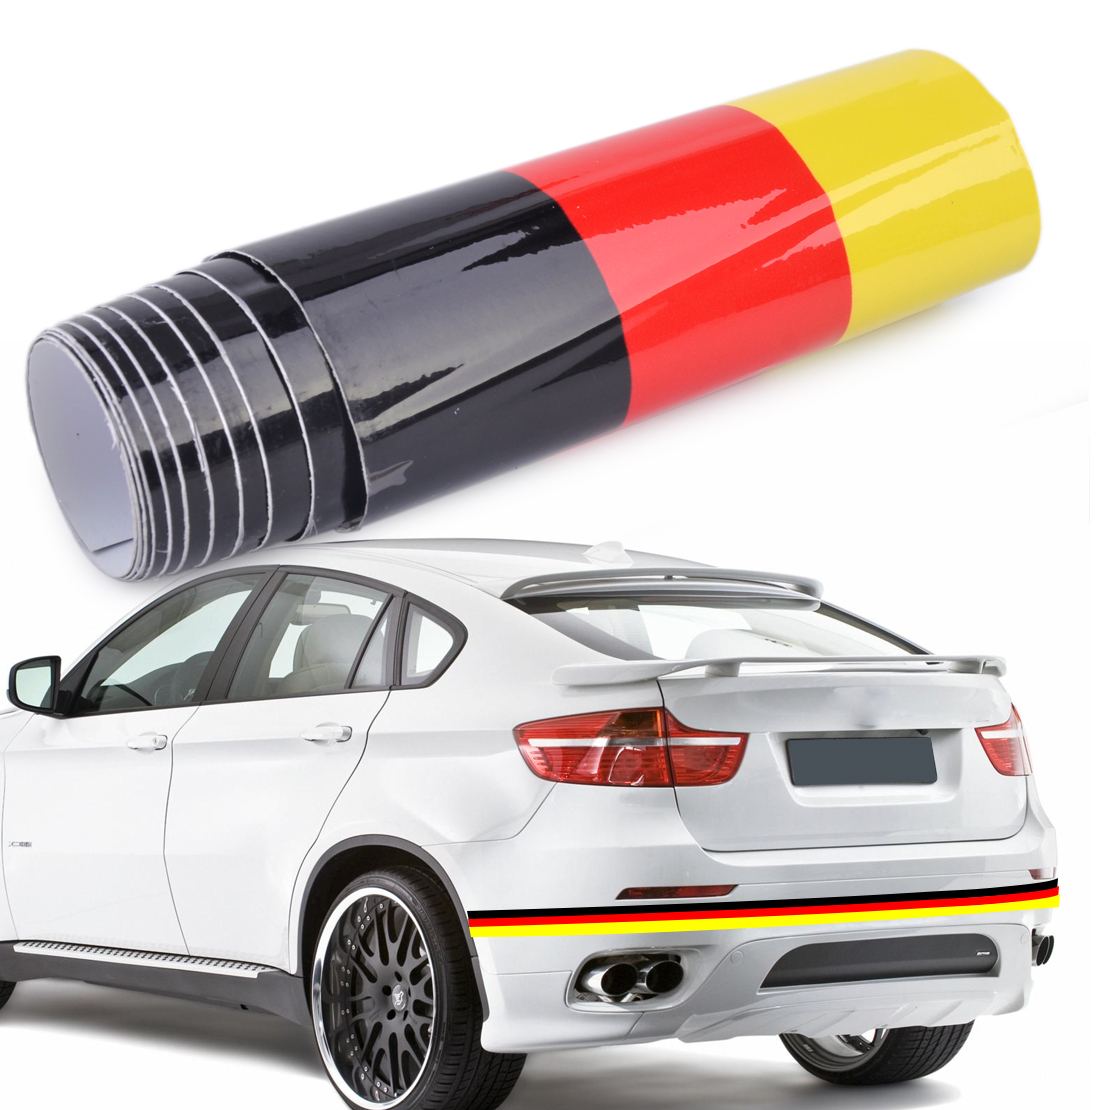 1.5M DIY Germany Flag Sticker Car Auto Hood Body Roof Bumper Decal Stripe Decor Fit Mercedes Mazda VW Audi Kia Toyota BMW